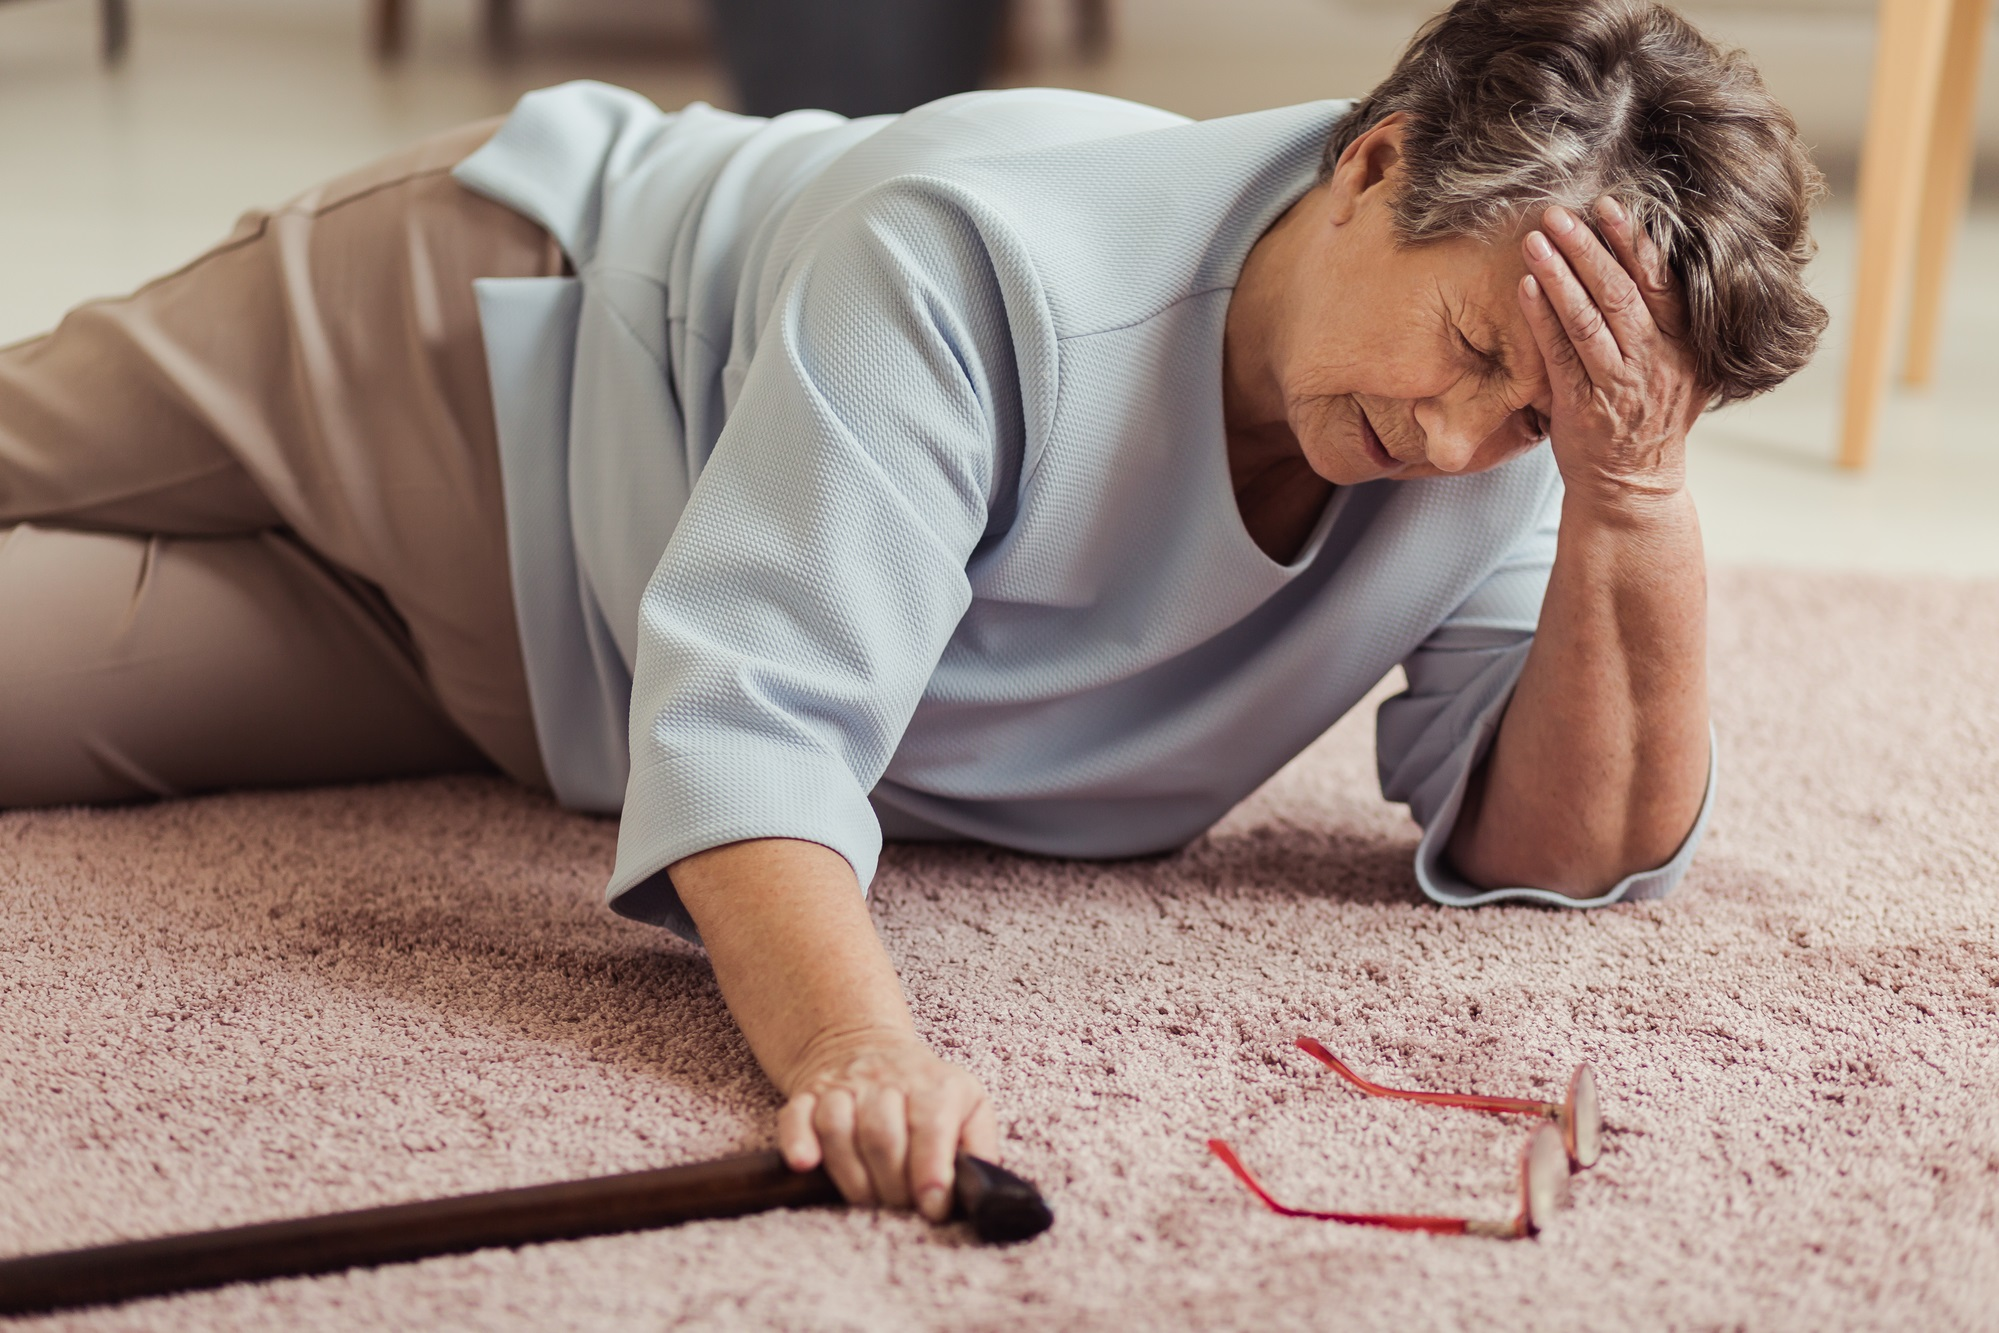 The Definitive Guide To Fall Prevention For Seniors